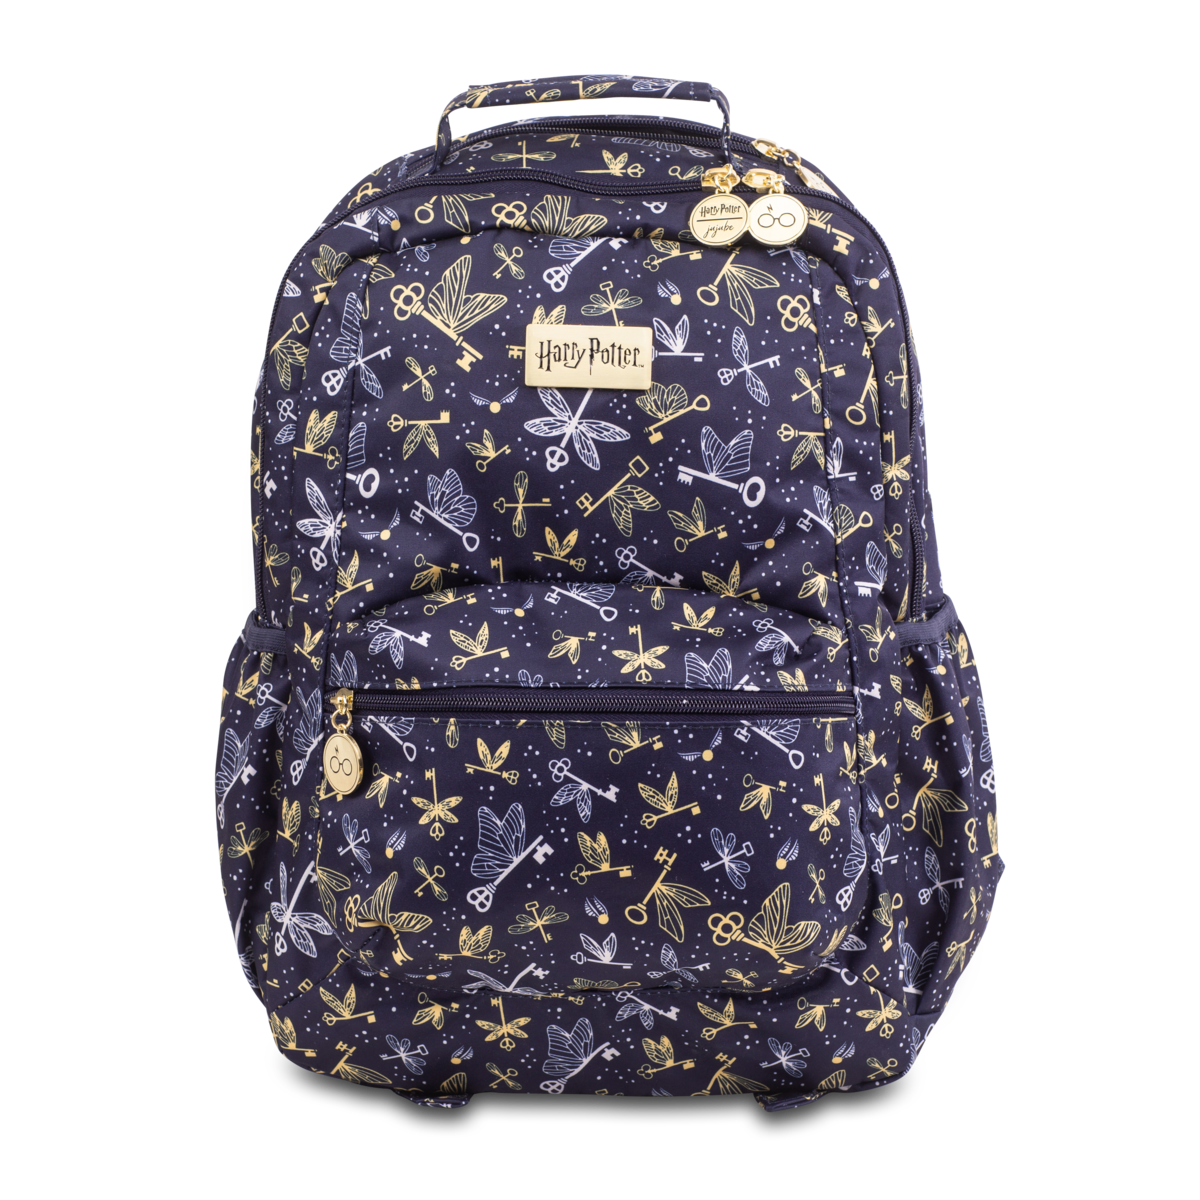 Jujube Be Packed – The full-size backpack that is the perfect bag, backpack, or diaper bag!